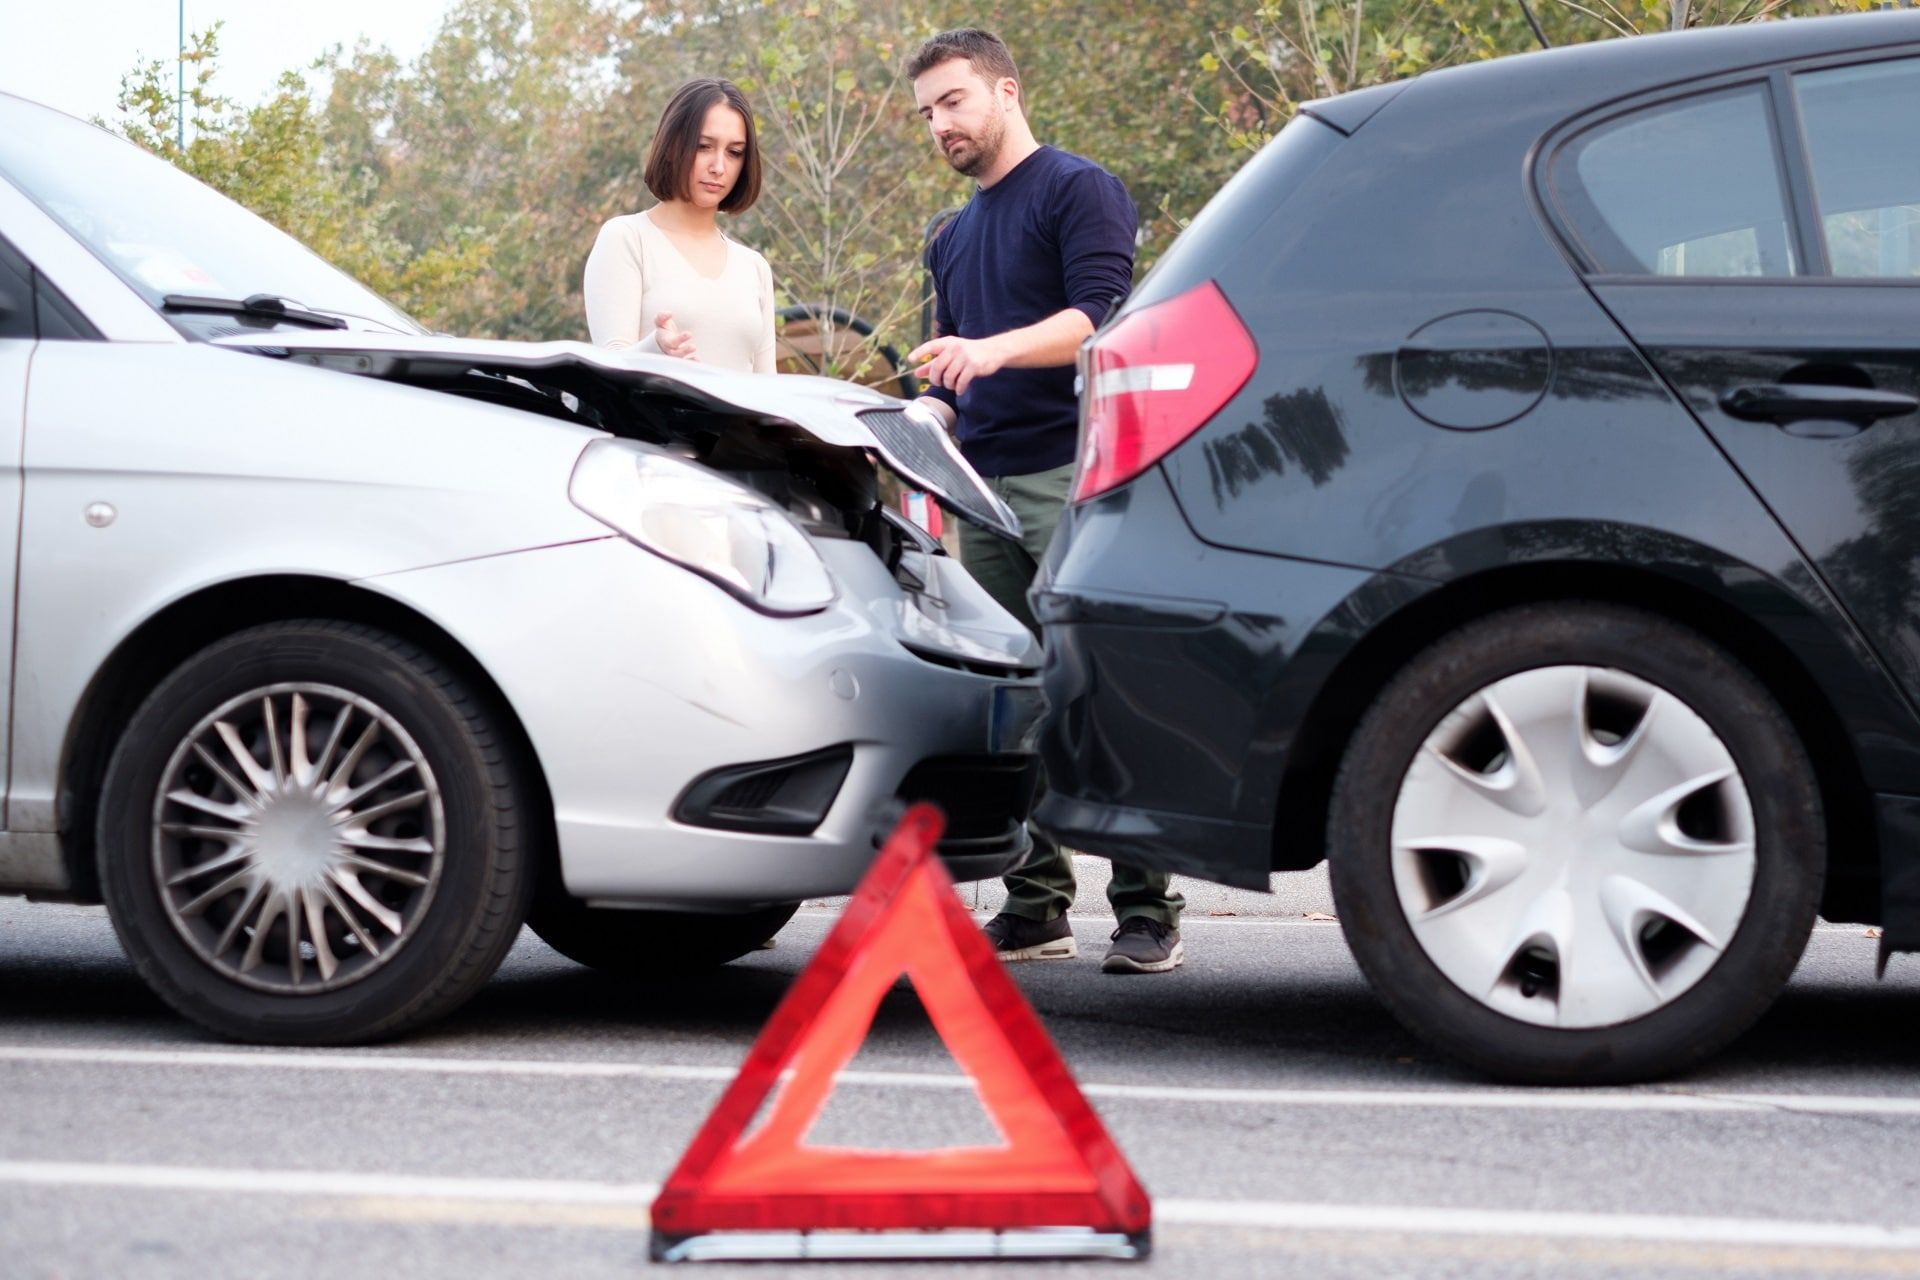 Fatal Auto Accident Crash in Temecula Highlights Importance of Safe Driving Practices